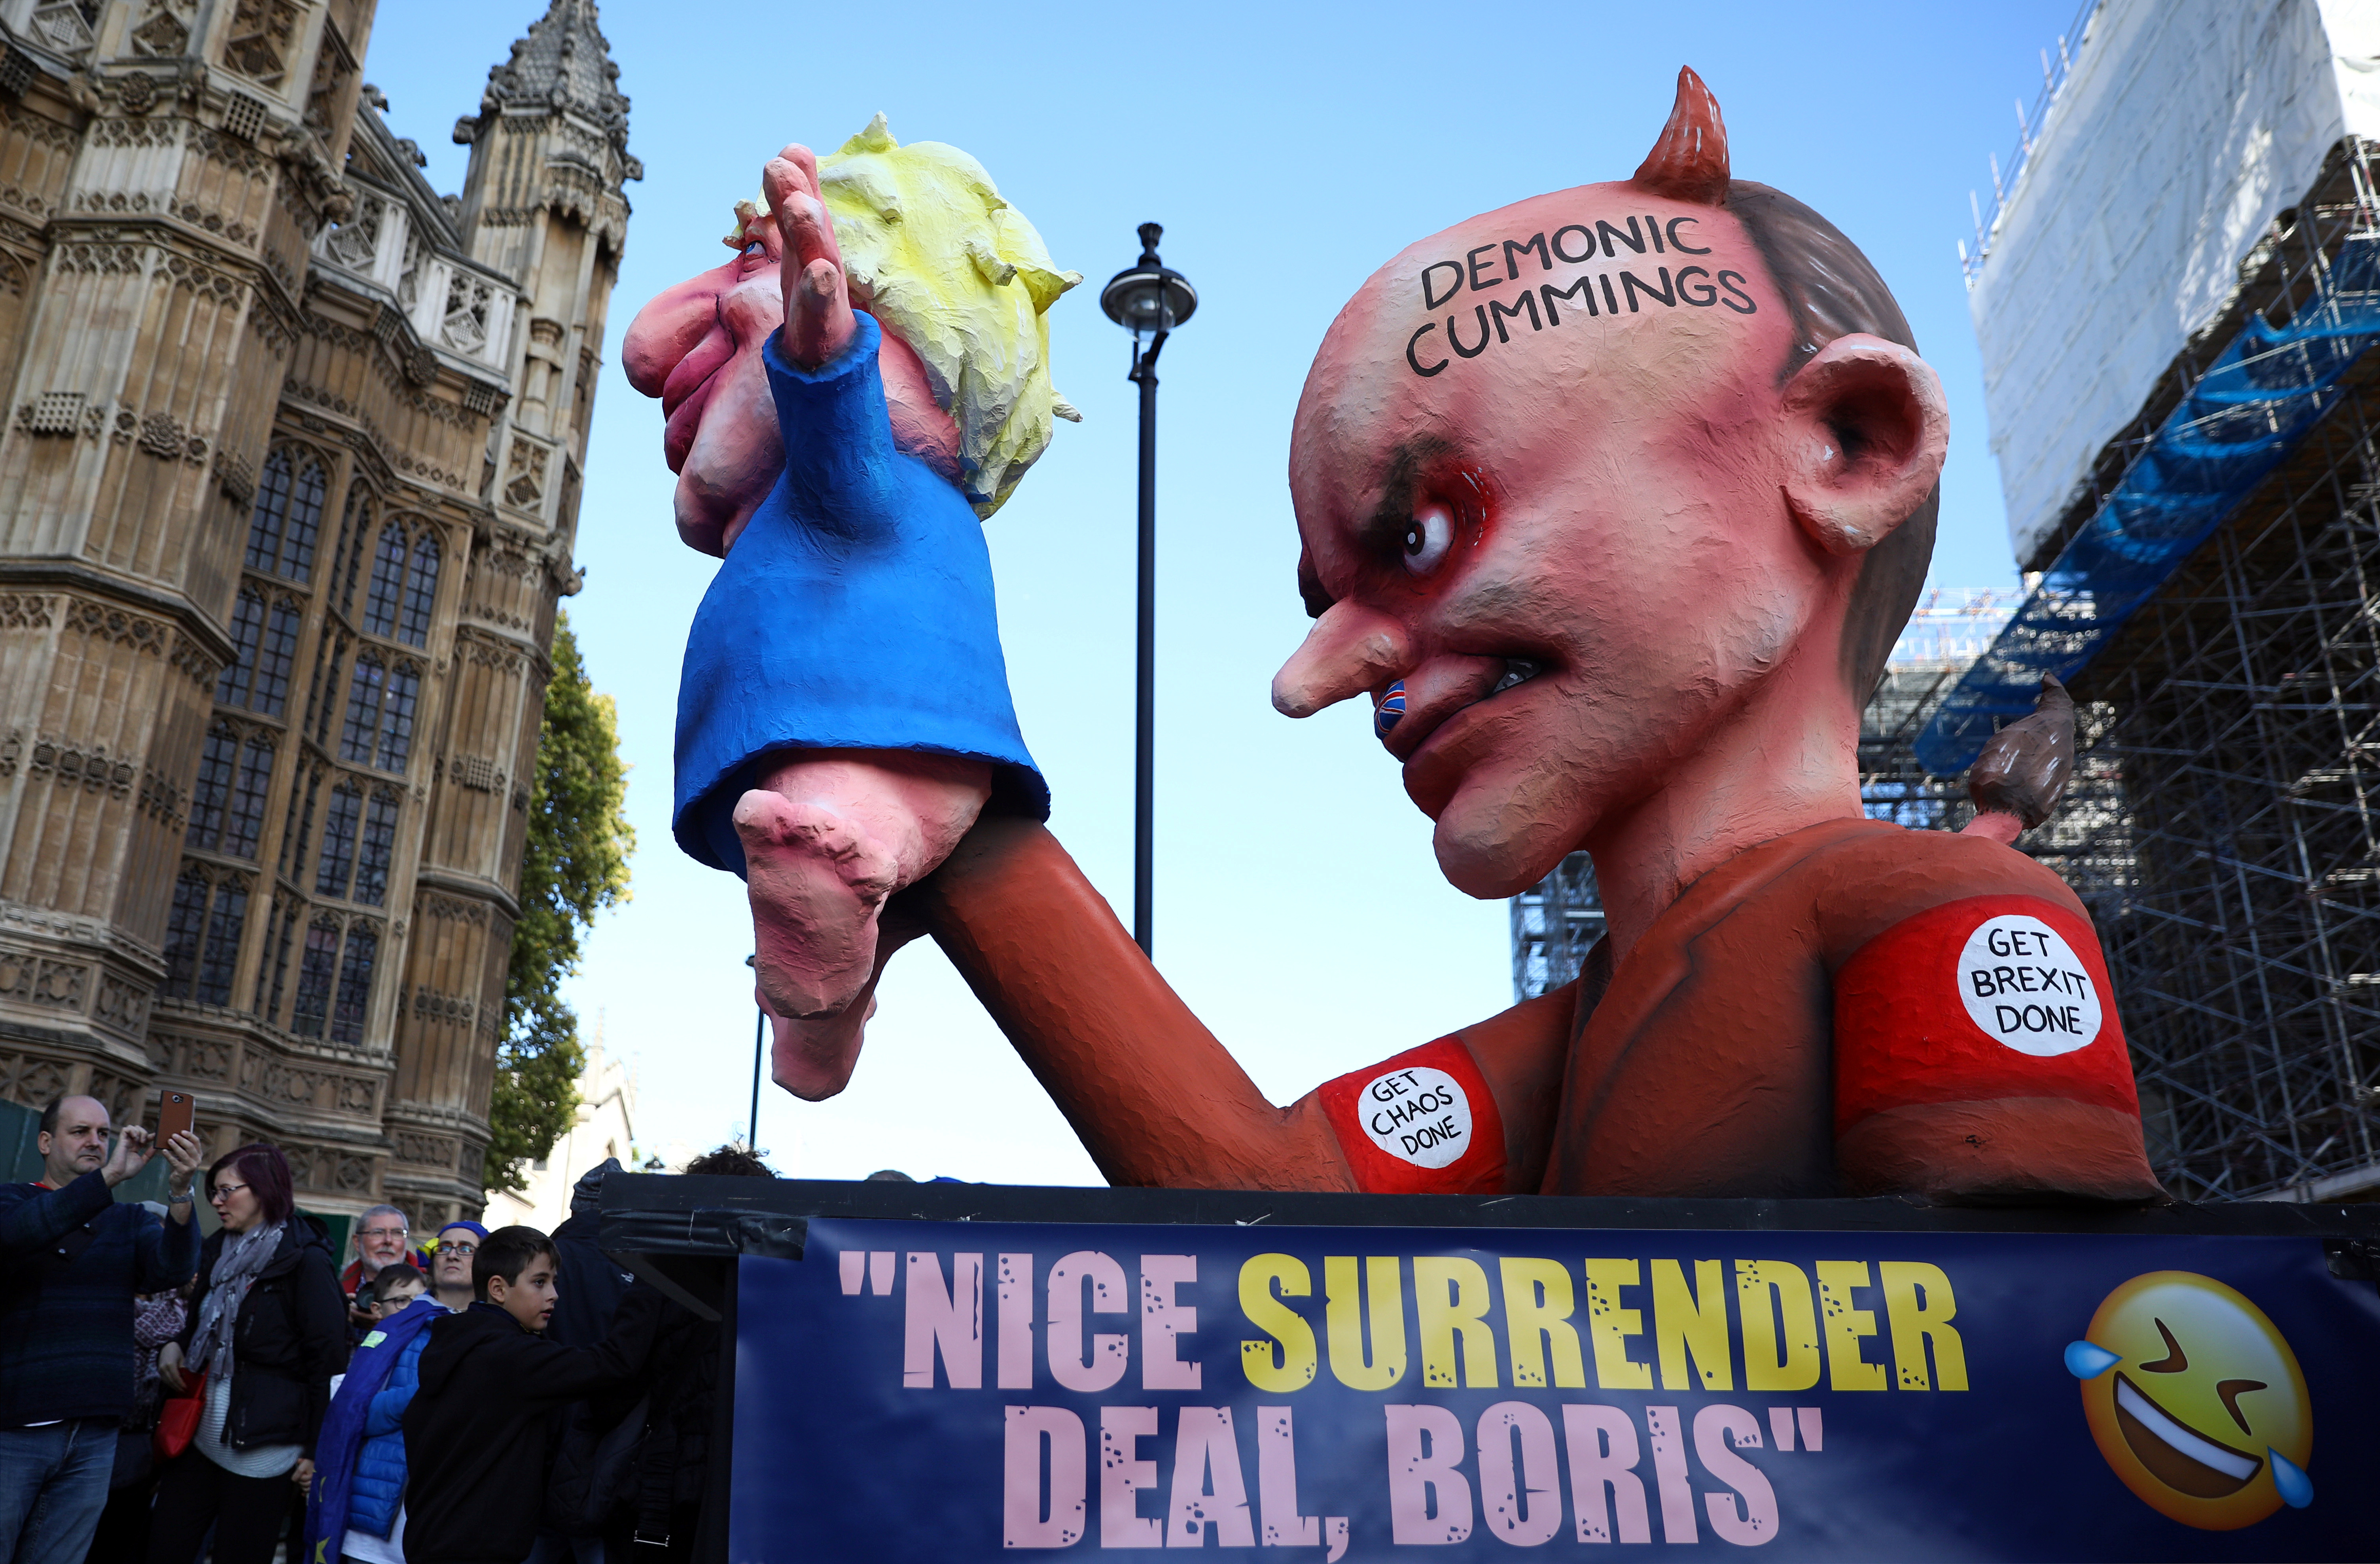 Figures depicting Britain's Prime Minister Boris Johnson and his special advisor Dominic Cummings are displayed during a demonstration as parliament sits on a Saturday for the first time since the 1982 Falklands War, to discuss Brexit in London, Britain, October 19, 2019.